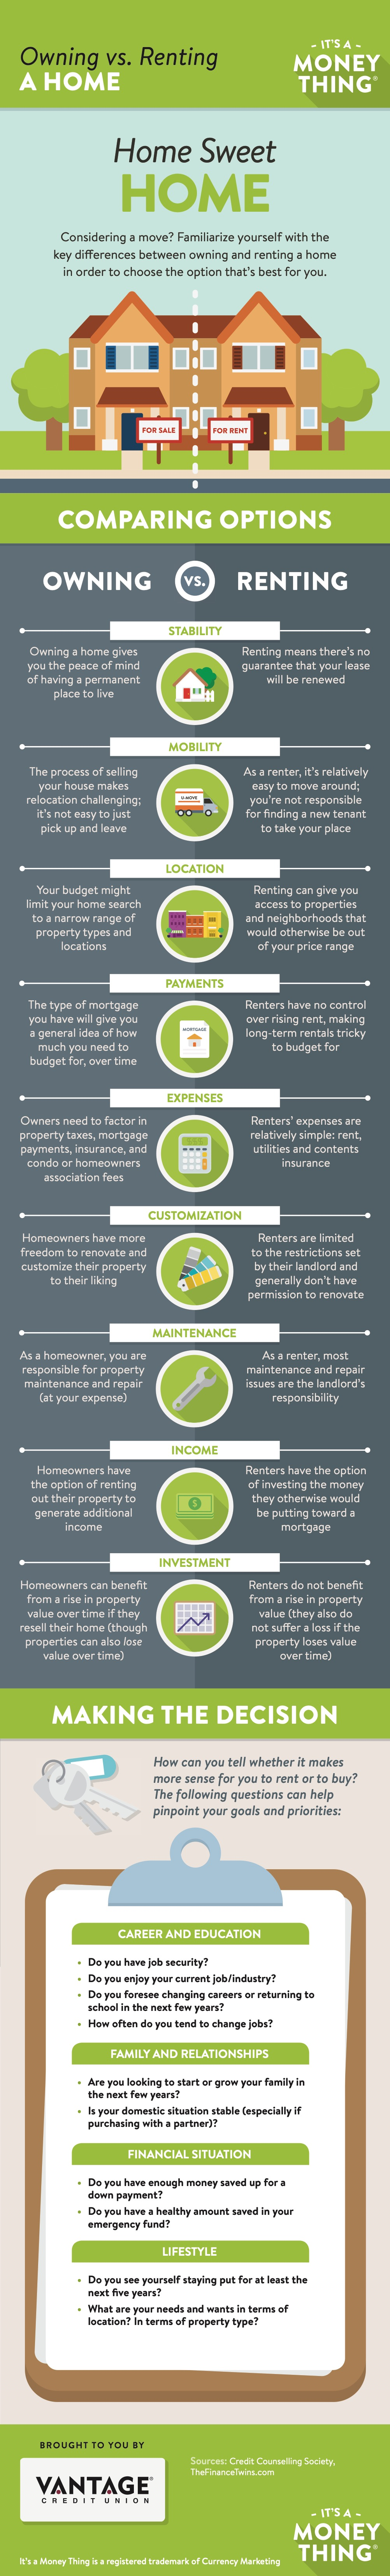 Infographic comparison of owning versus renting a home